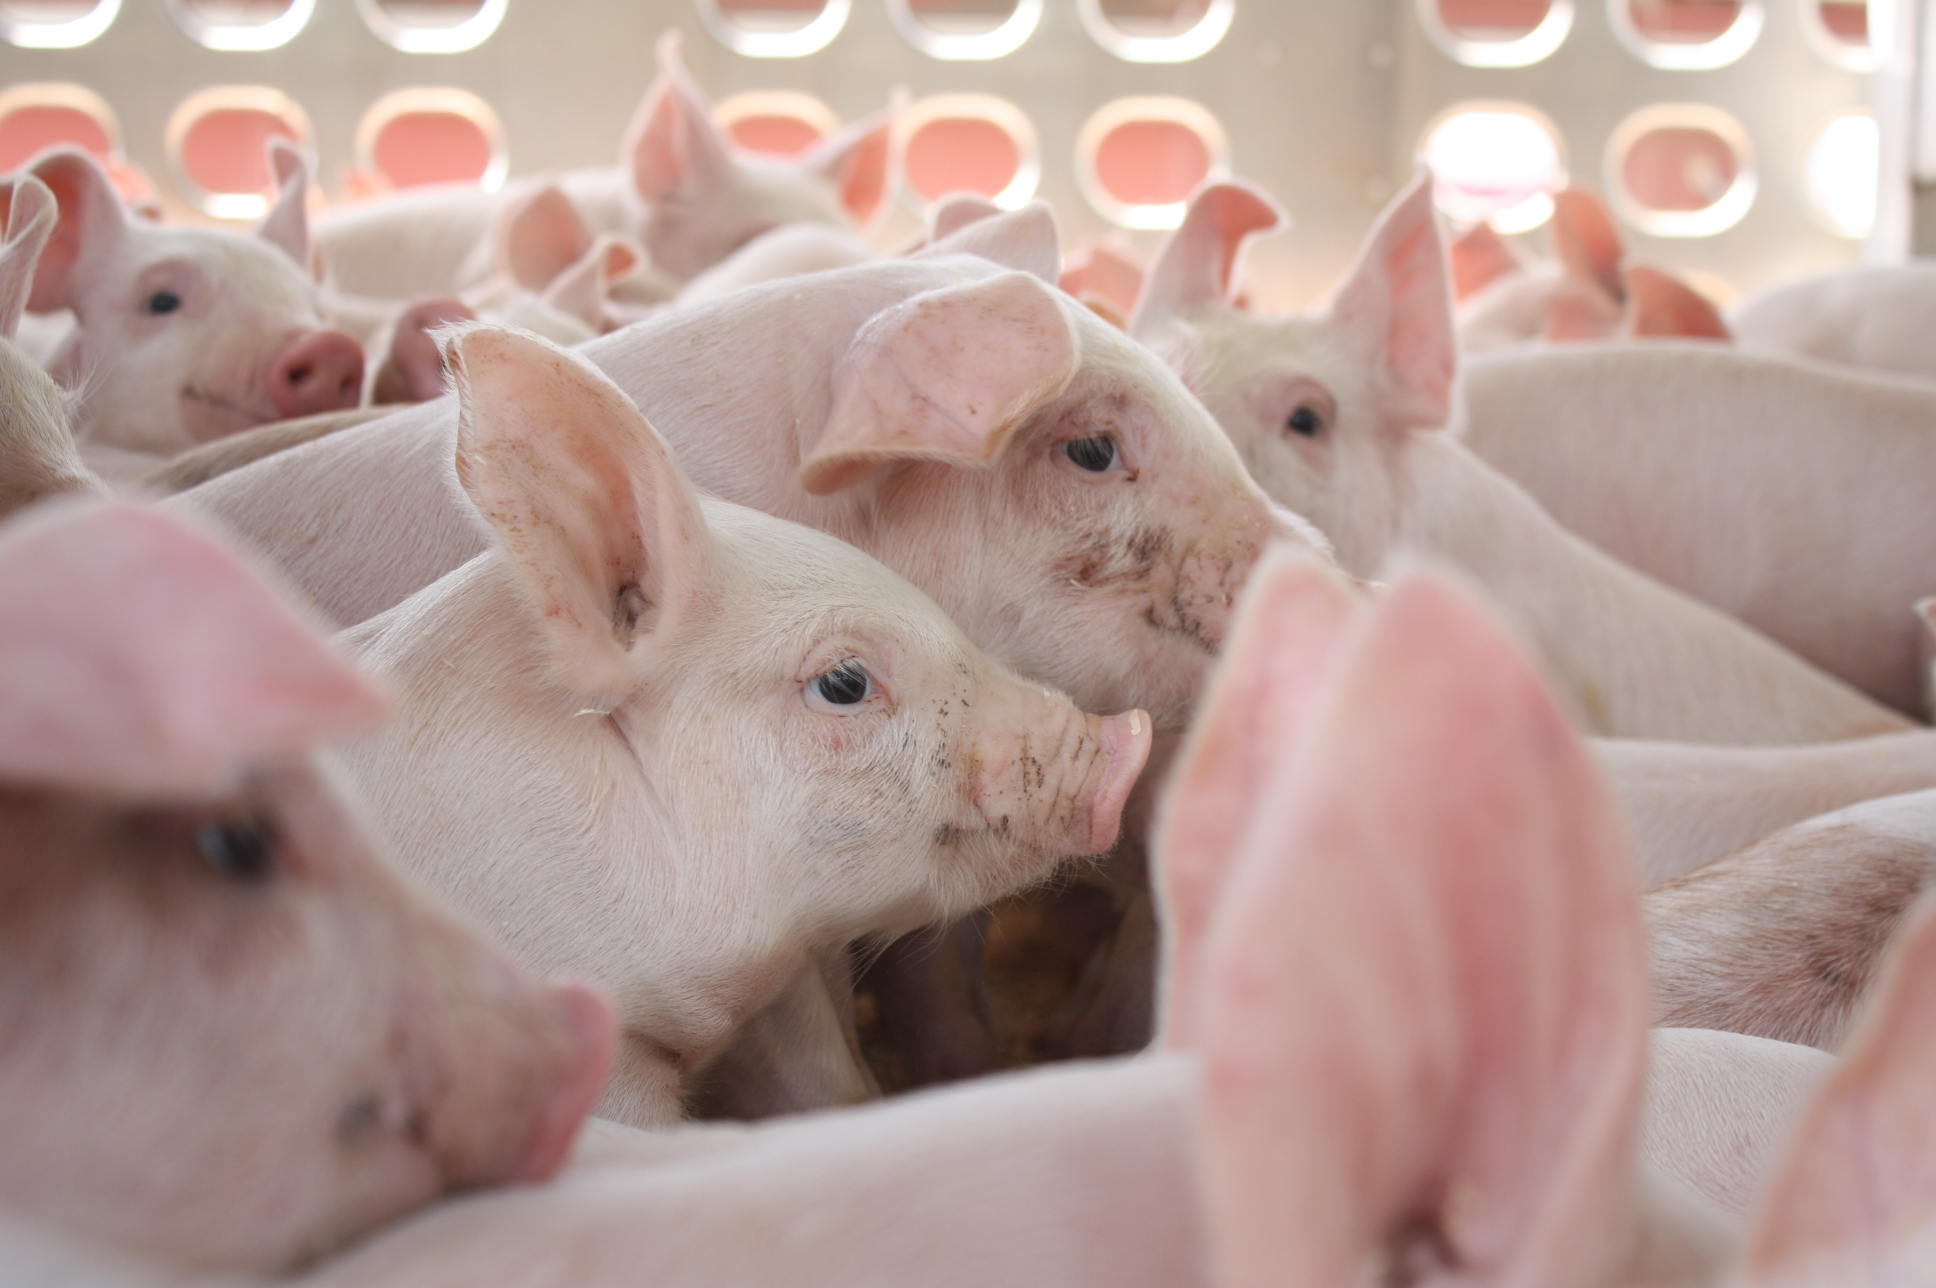 What You Need To Know About Livestock Antibiotic Usage